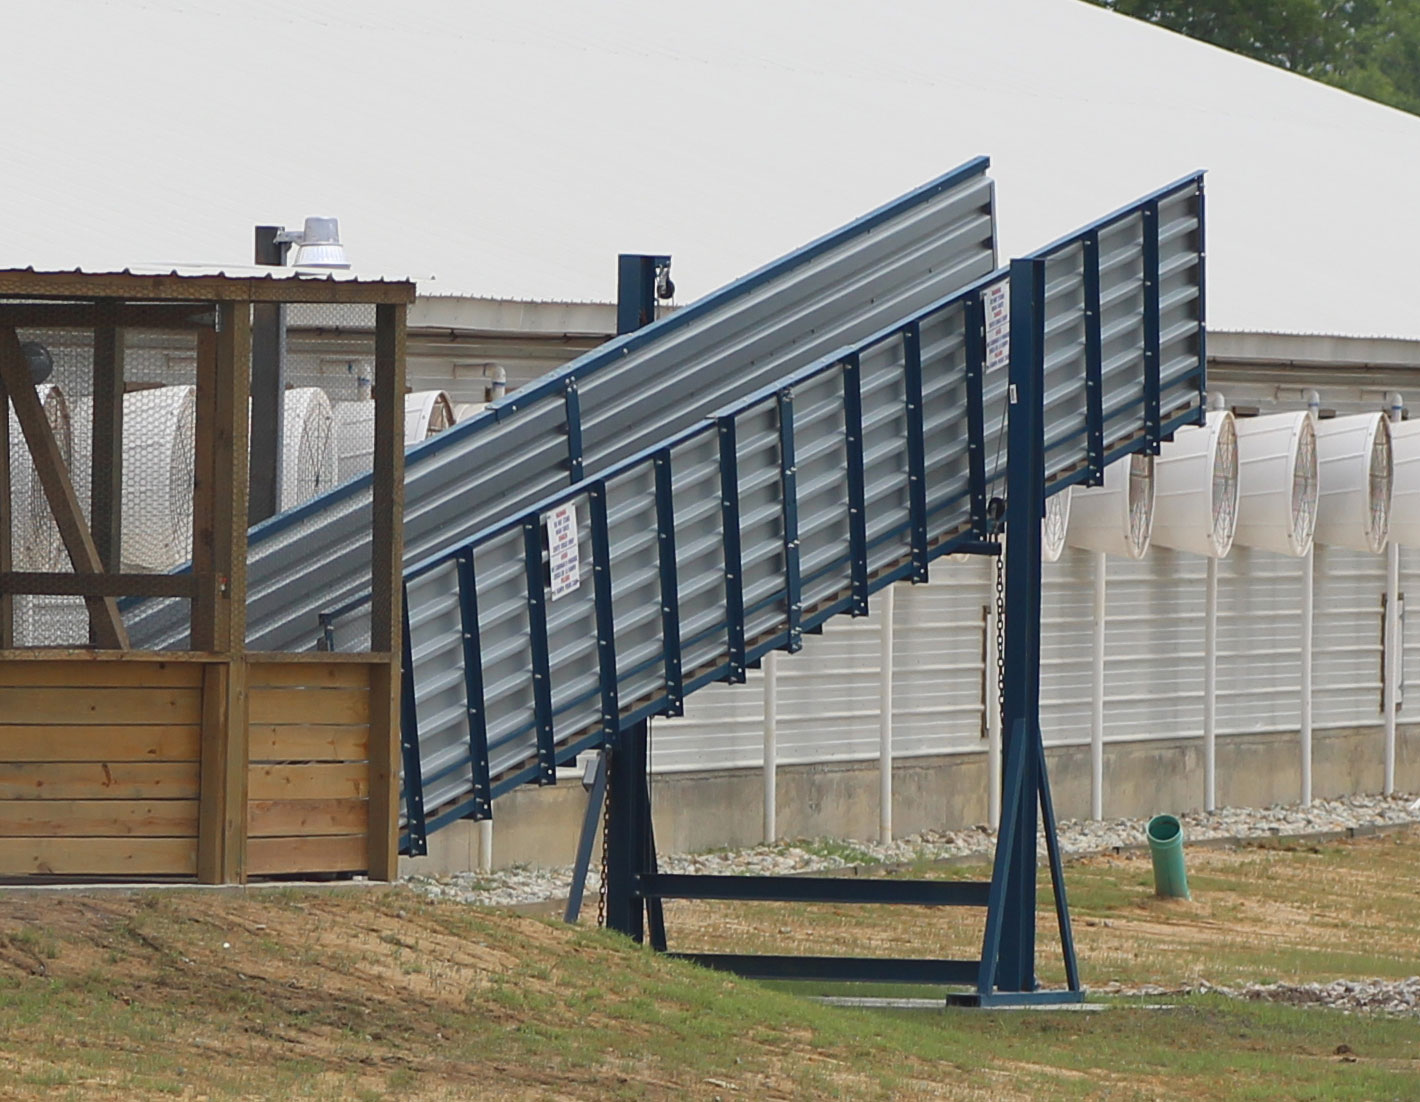 Hog Slat stationary loading chutes are available in multiple configurations to meet the needs of any swine production operation.